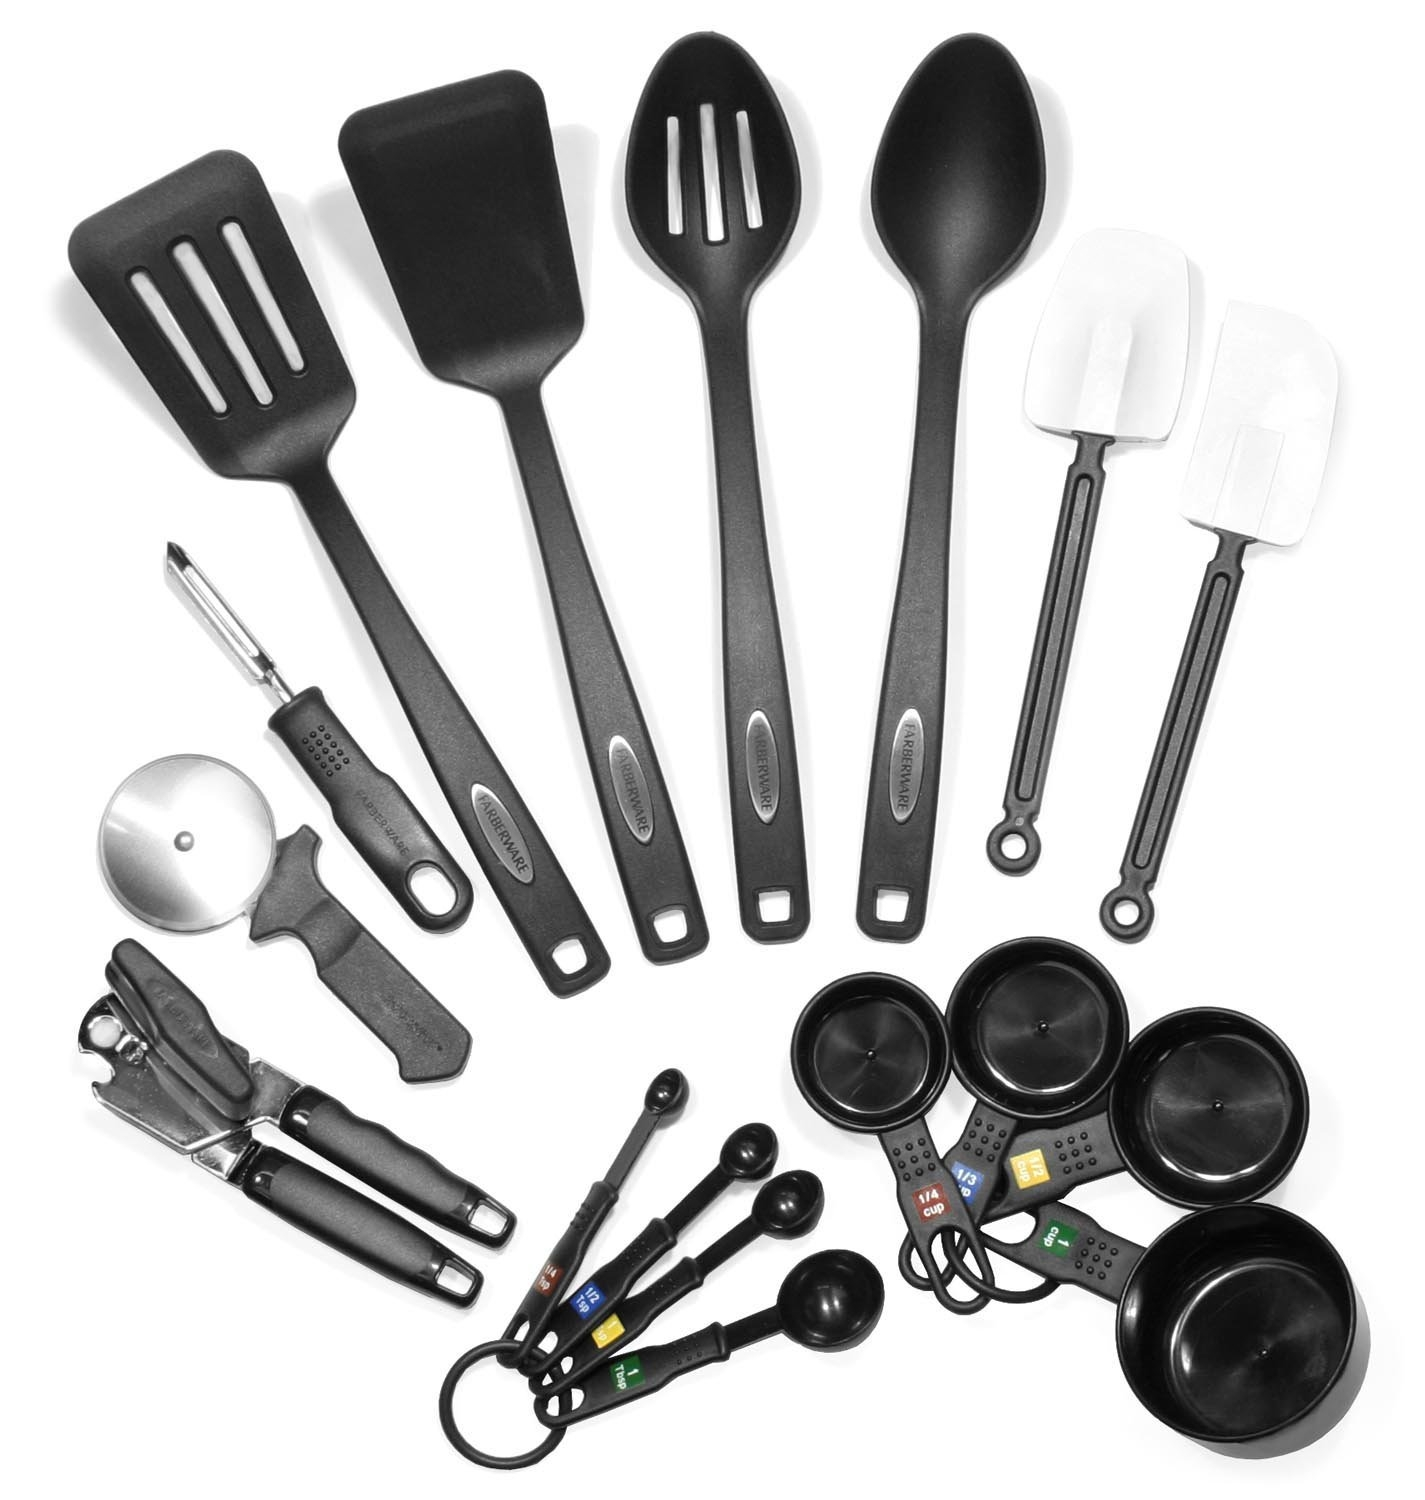 Permalink to Full Set Of Kitchen Utensils